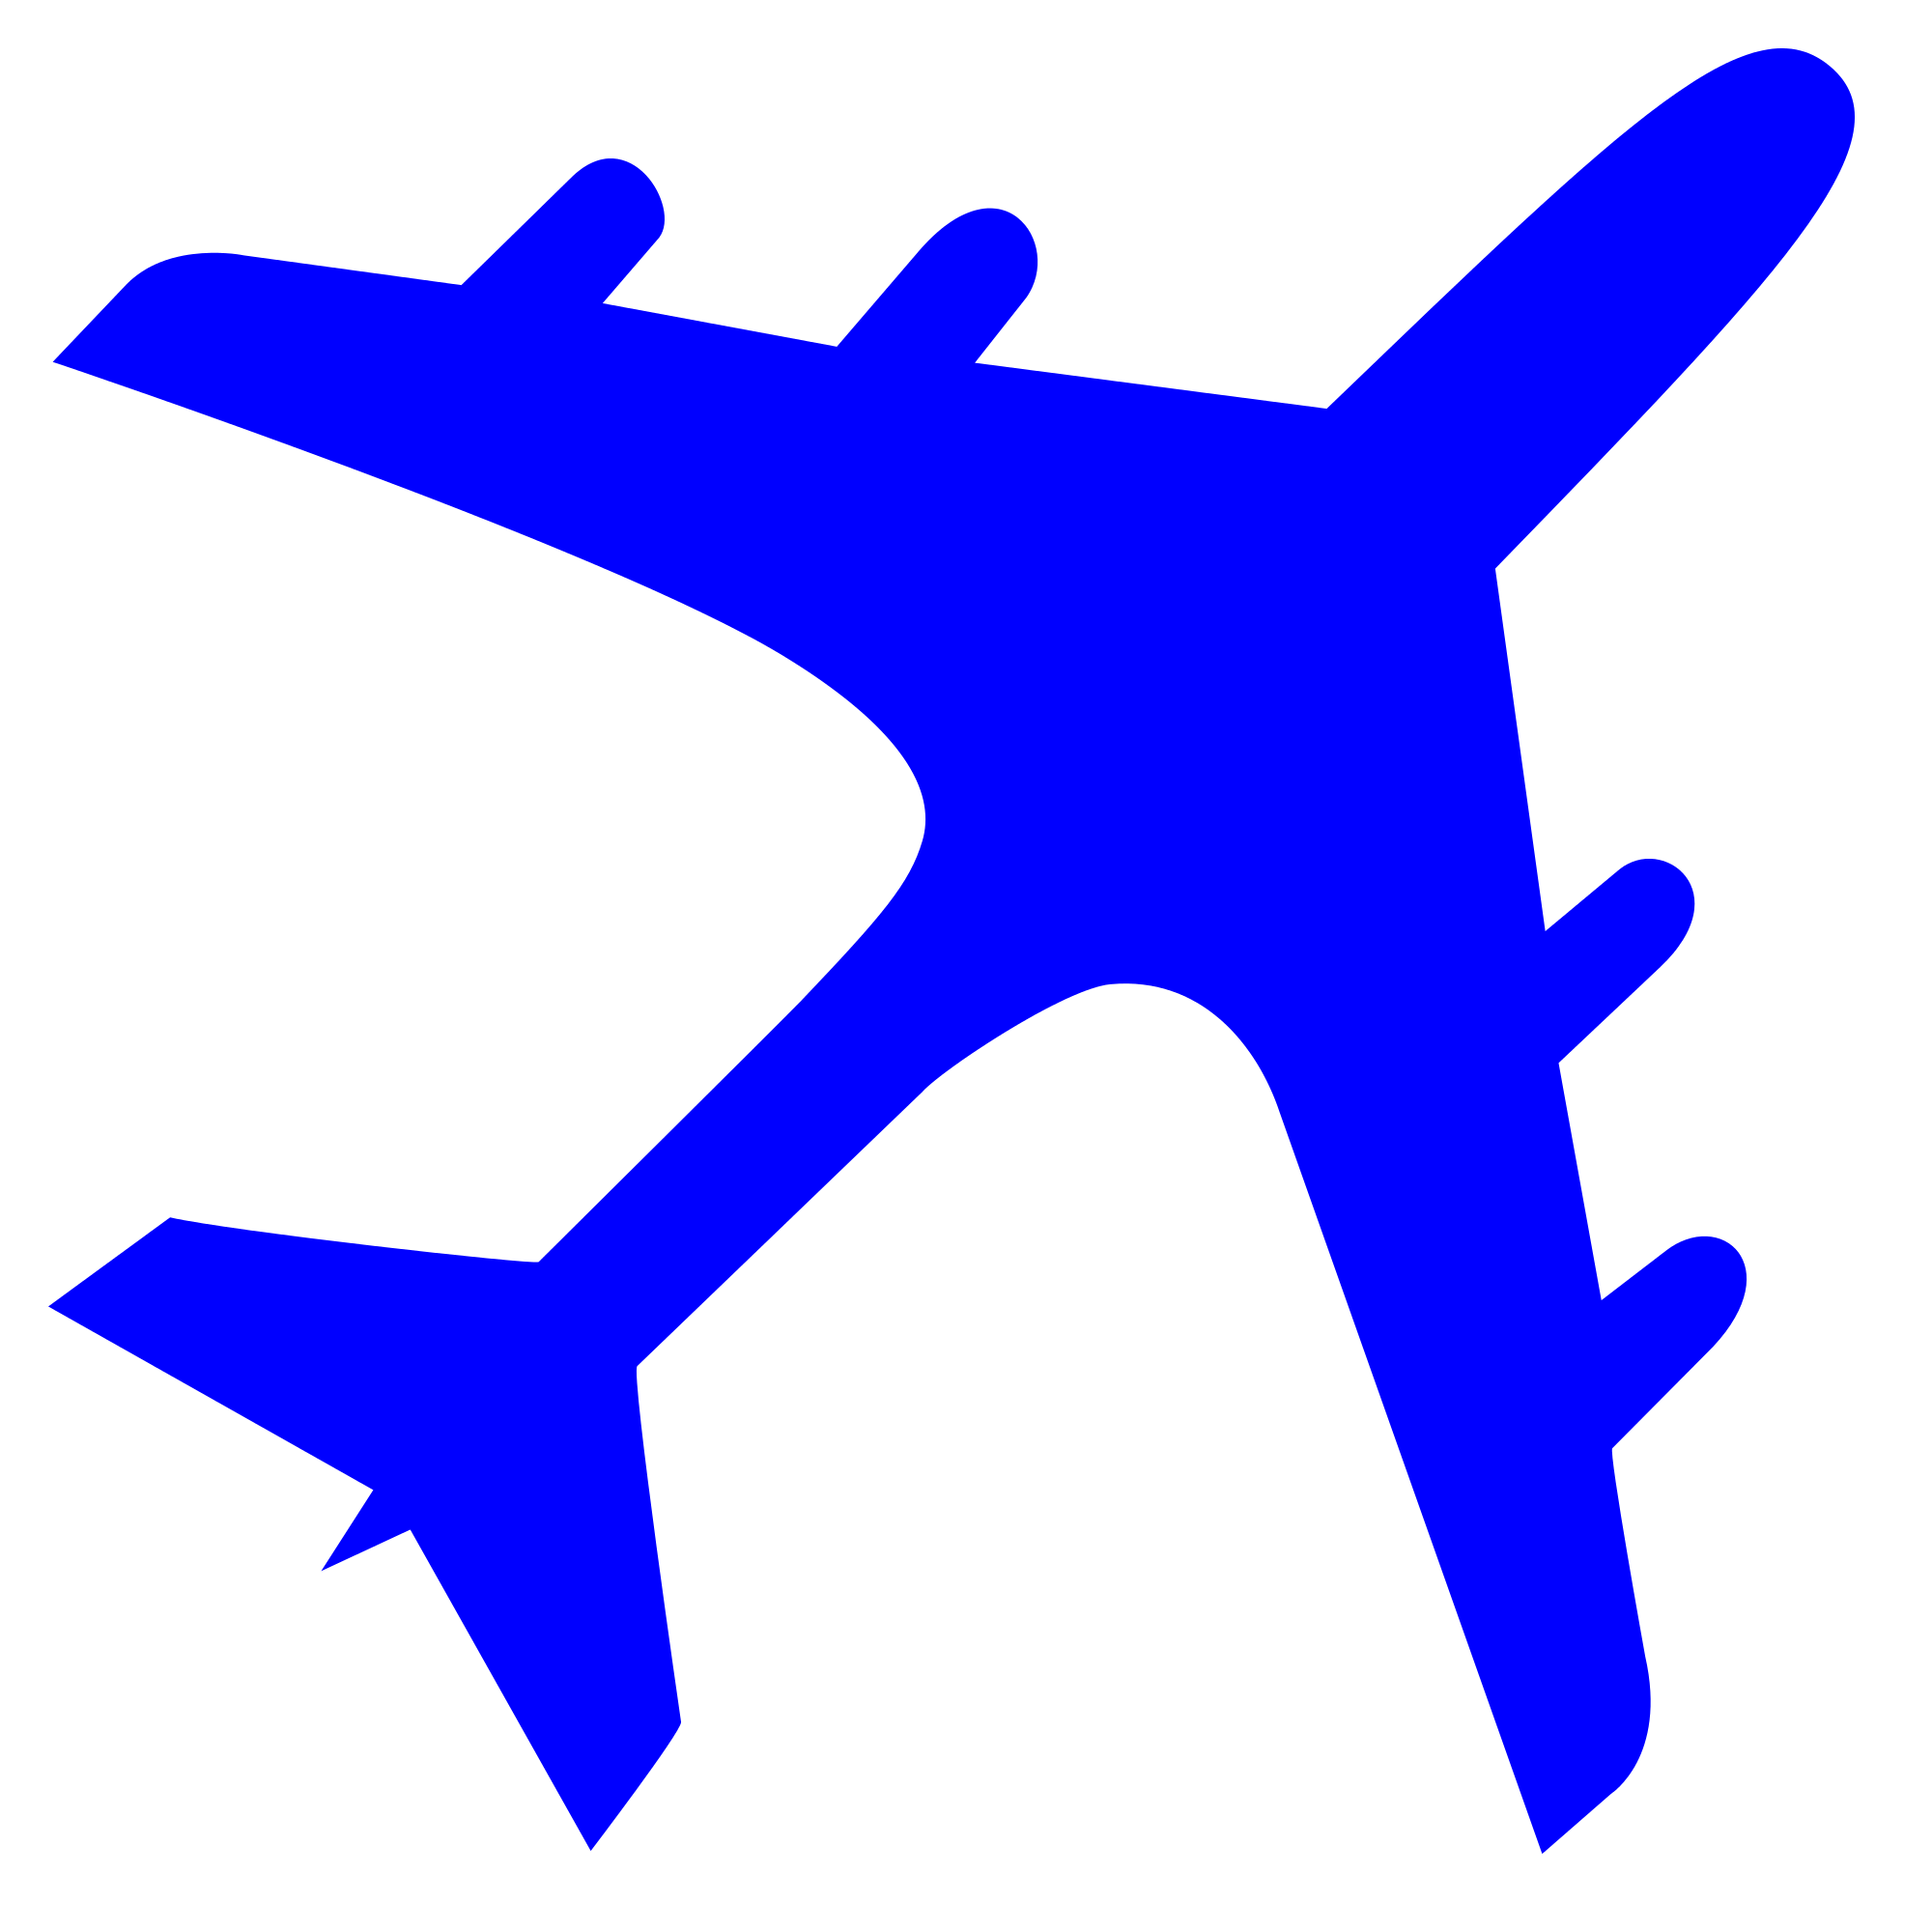 Blue Airplane Logo Logodix